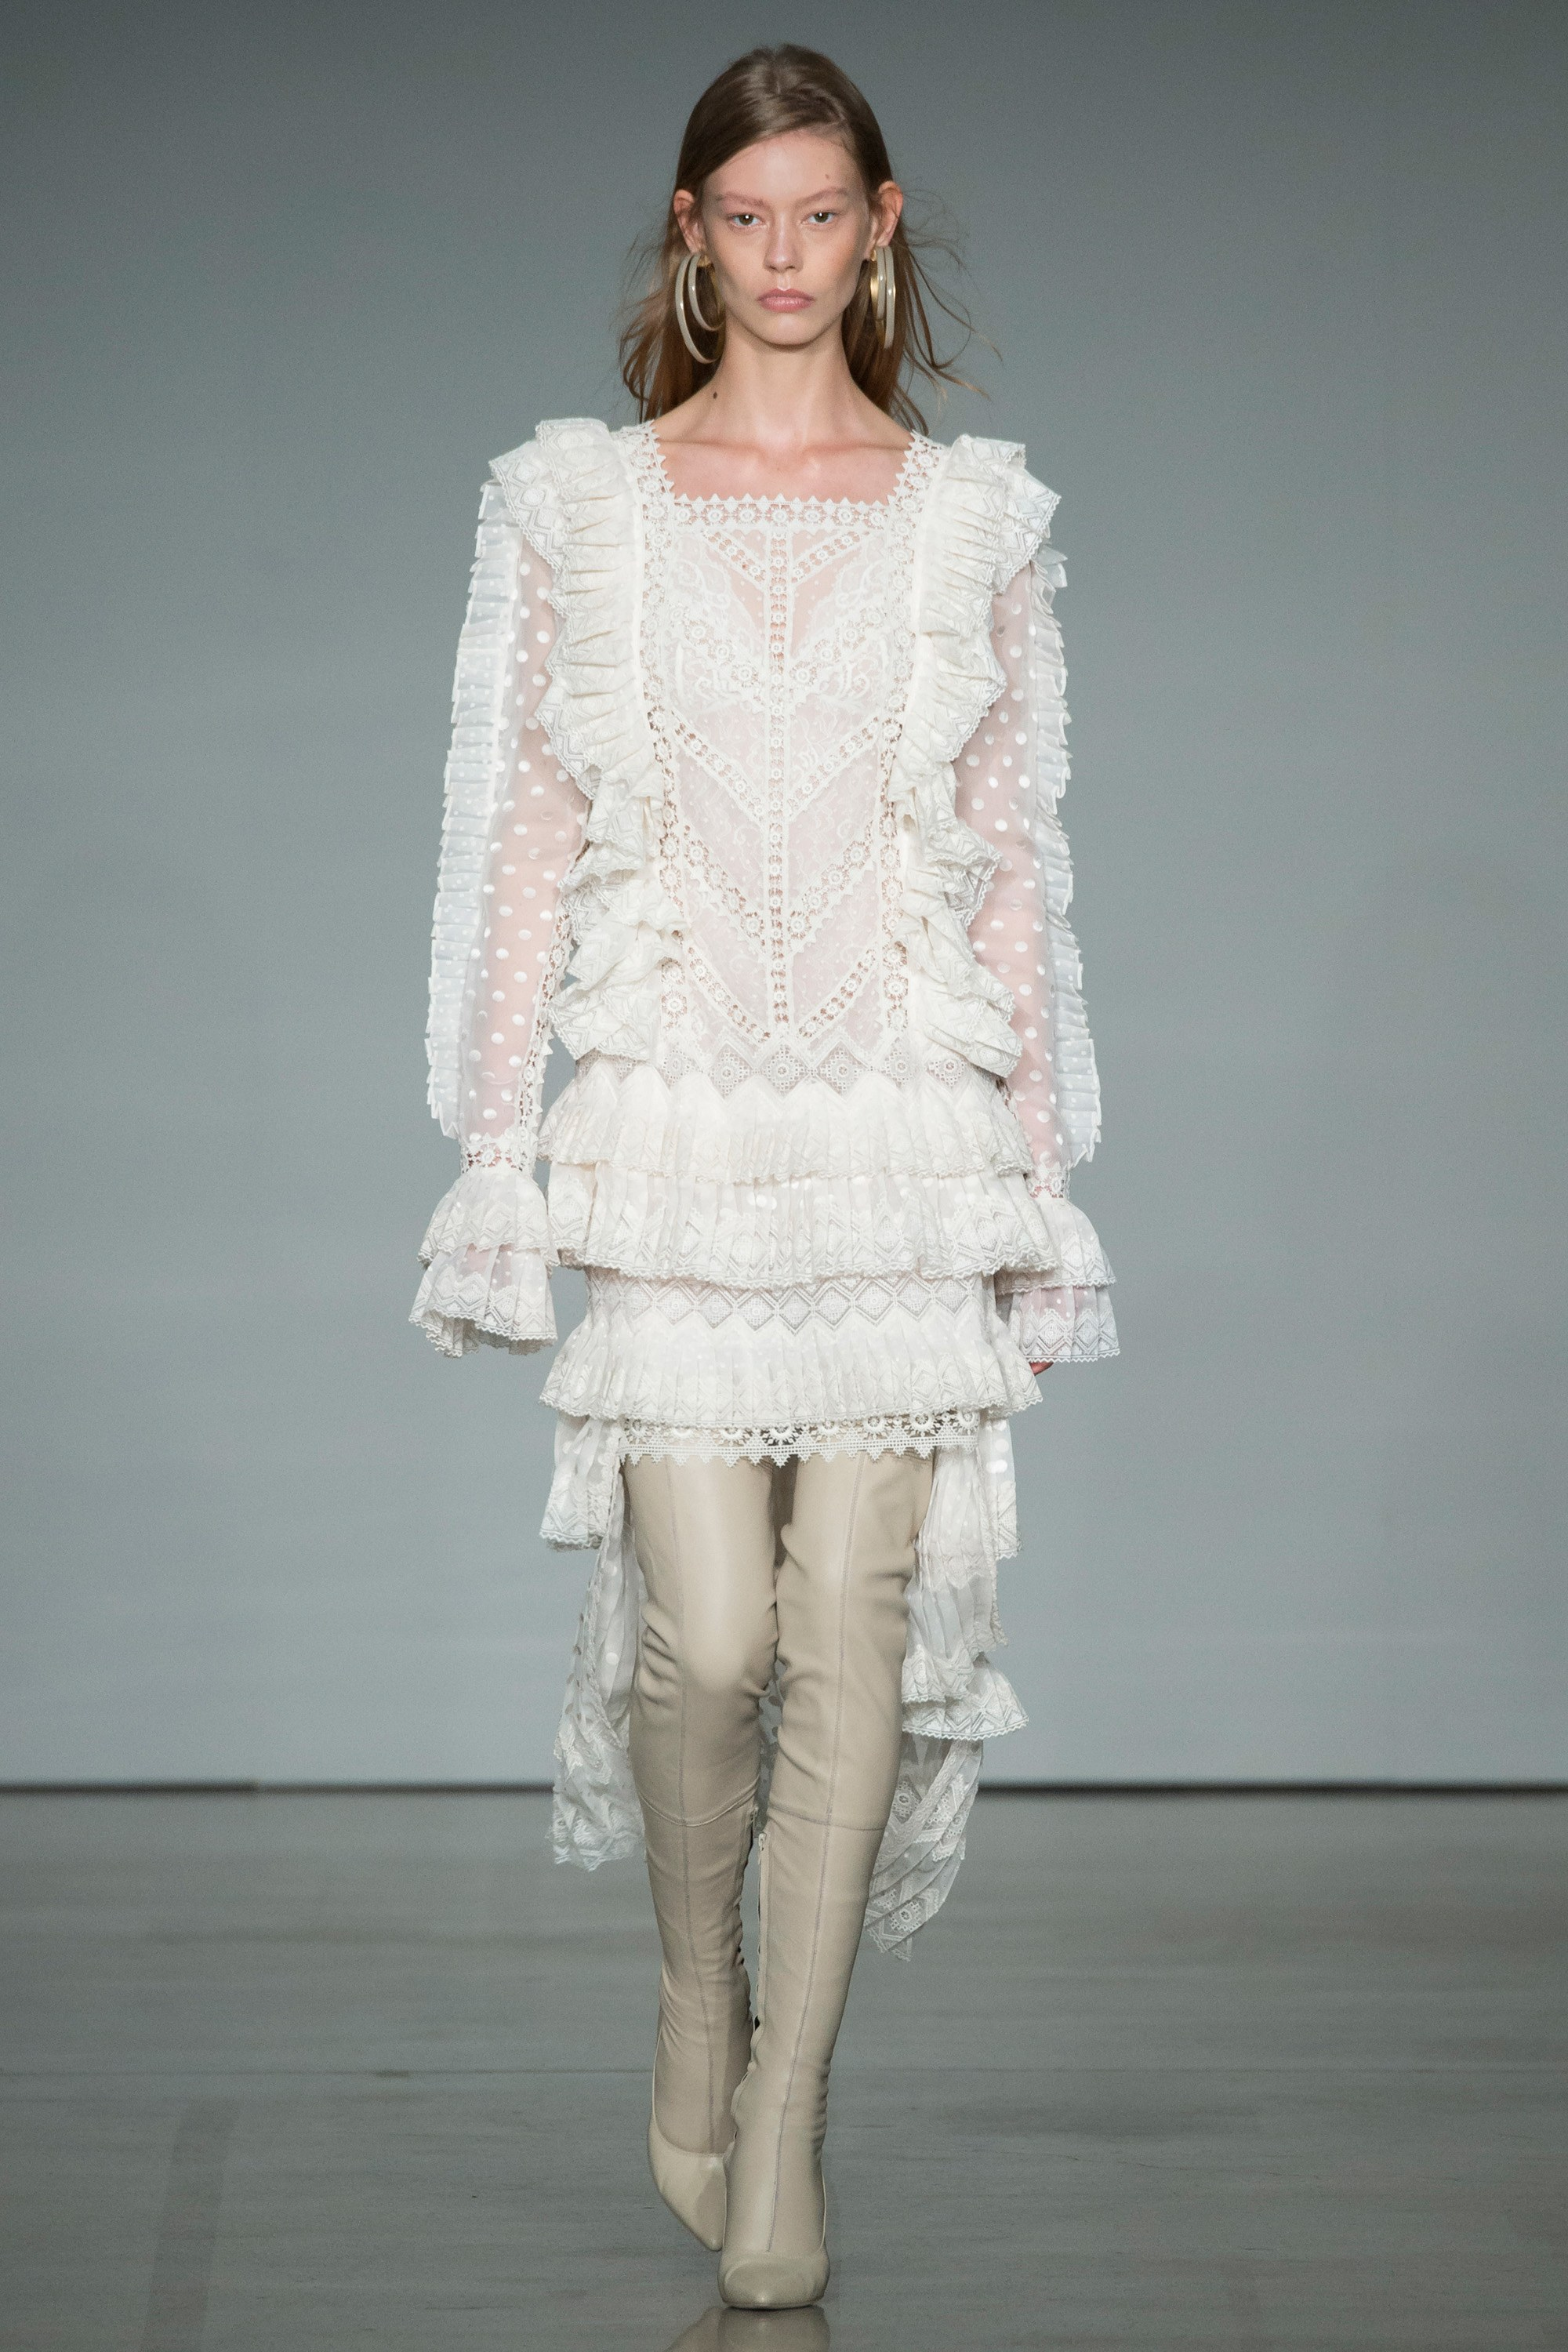 ZIMMERMANN -  loving the hailspot, ruffles and contrasting laces combined in this piece by one of my favourite home-grown labels